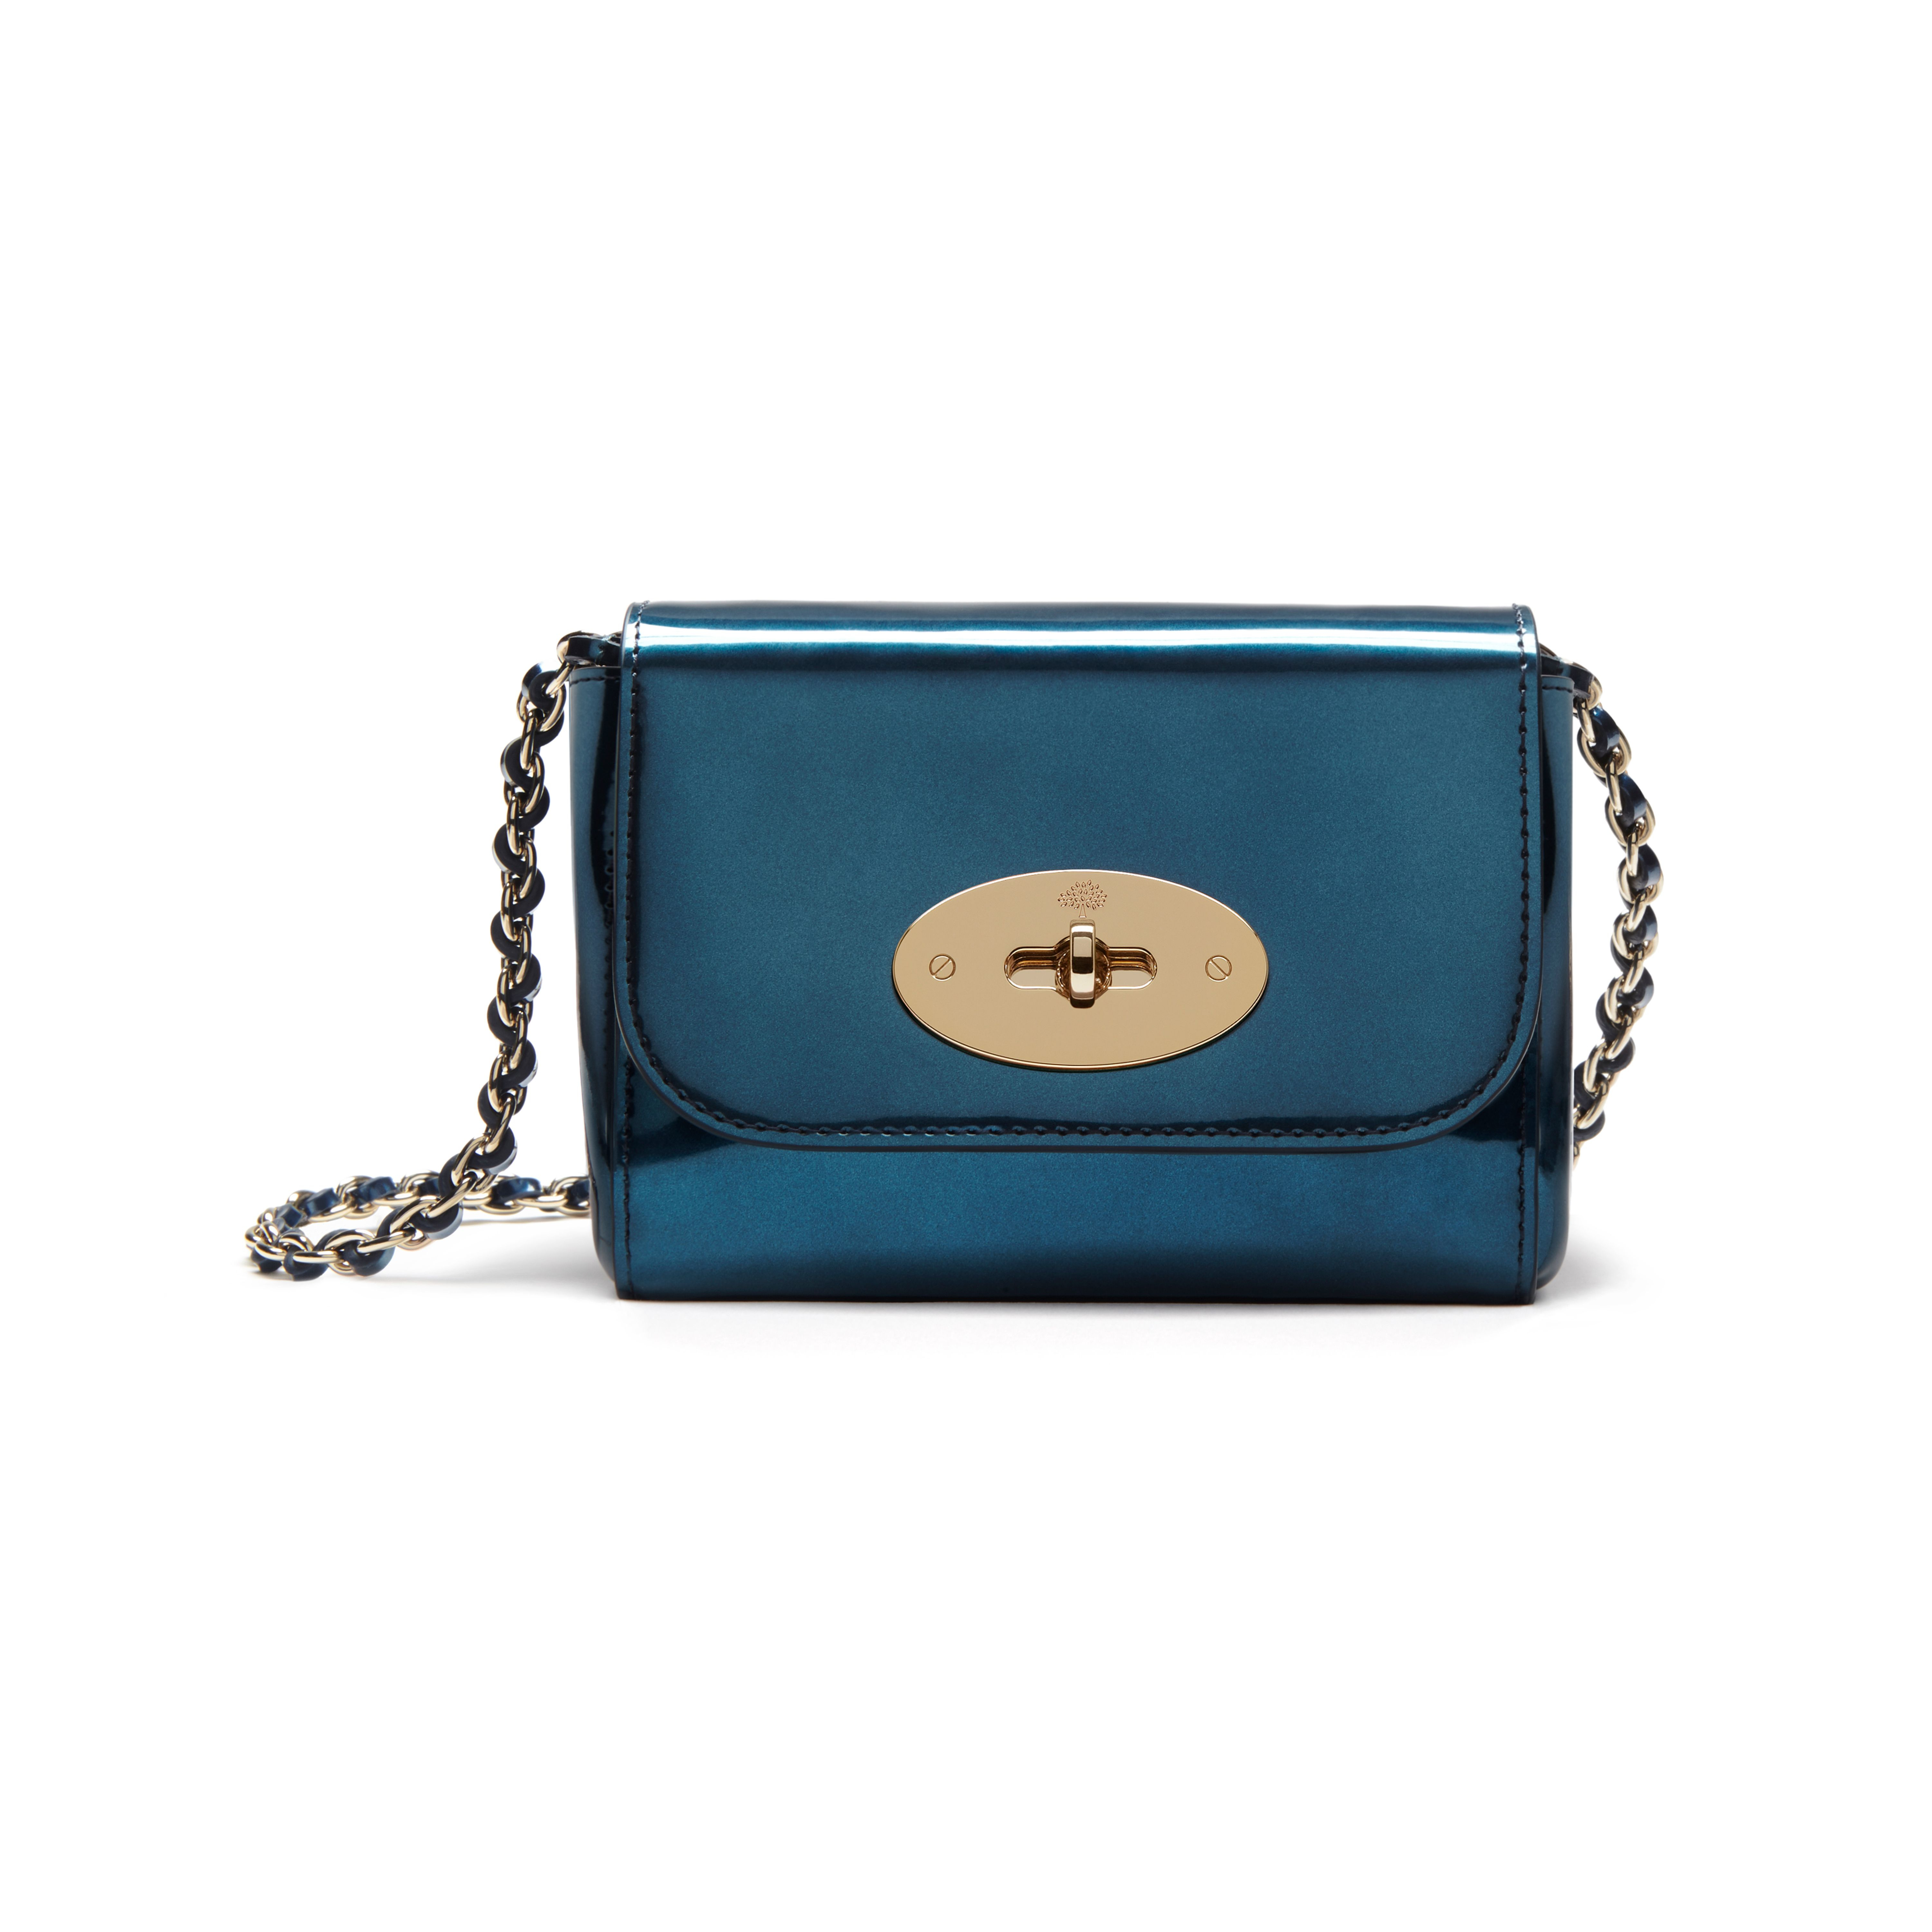 195afee39f0f Mulberry Lily Mini Leather Cross-body Bag in Blue - Lyst